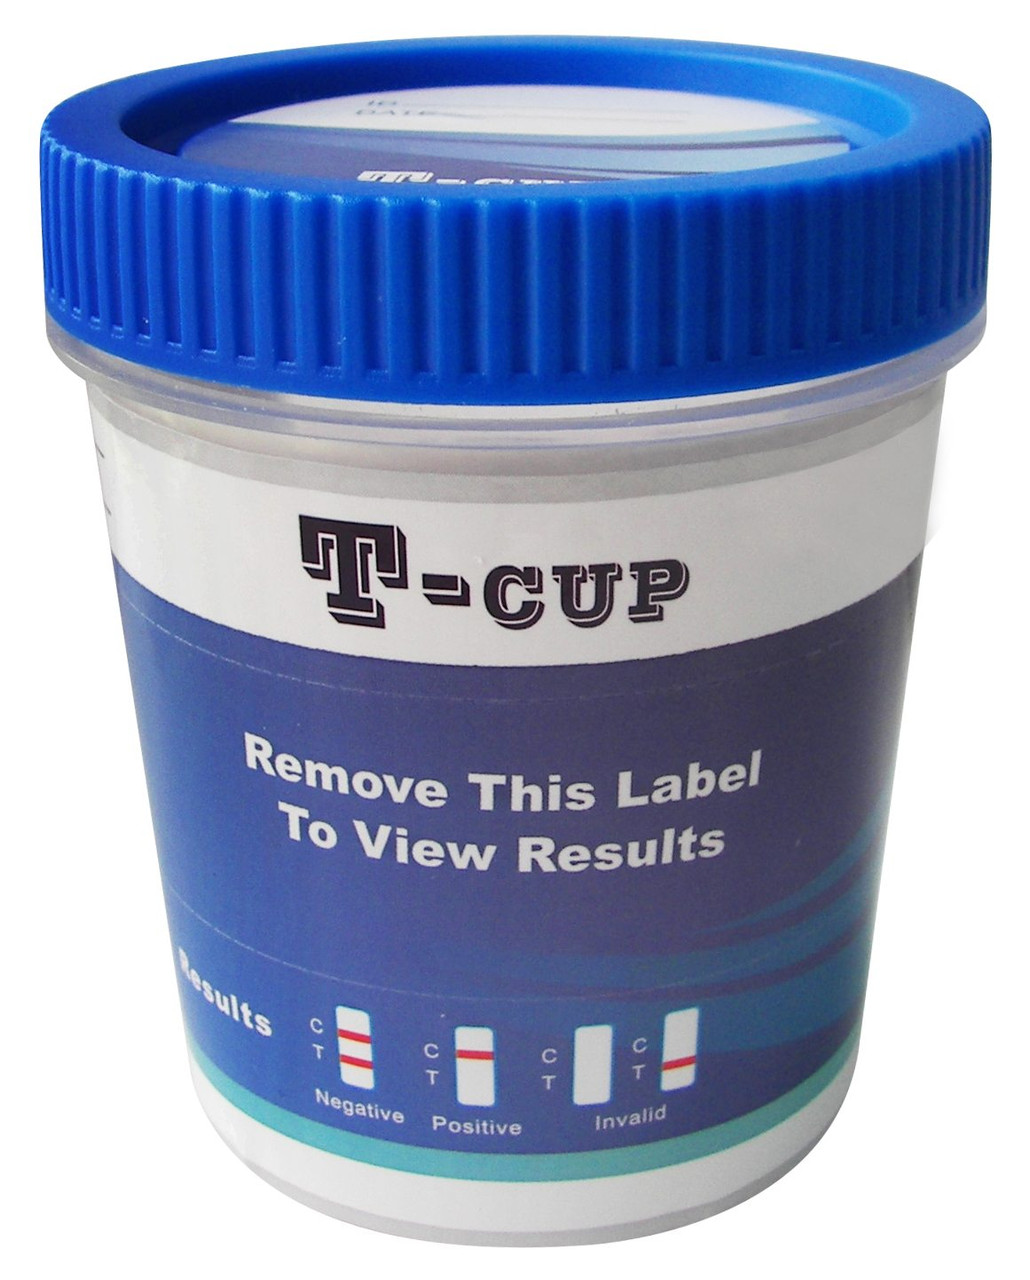 T-Cup Drug Test Cup 5-Panel  Label